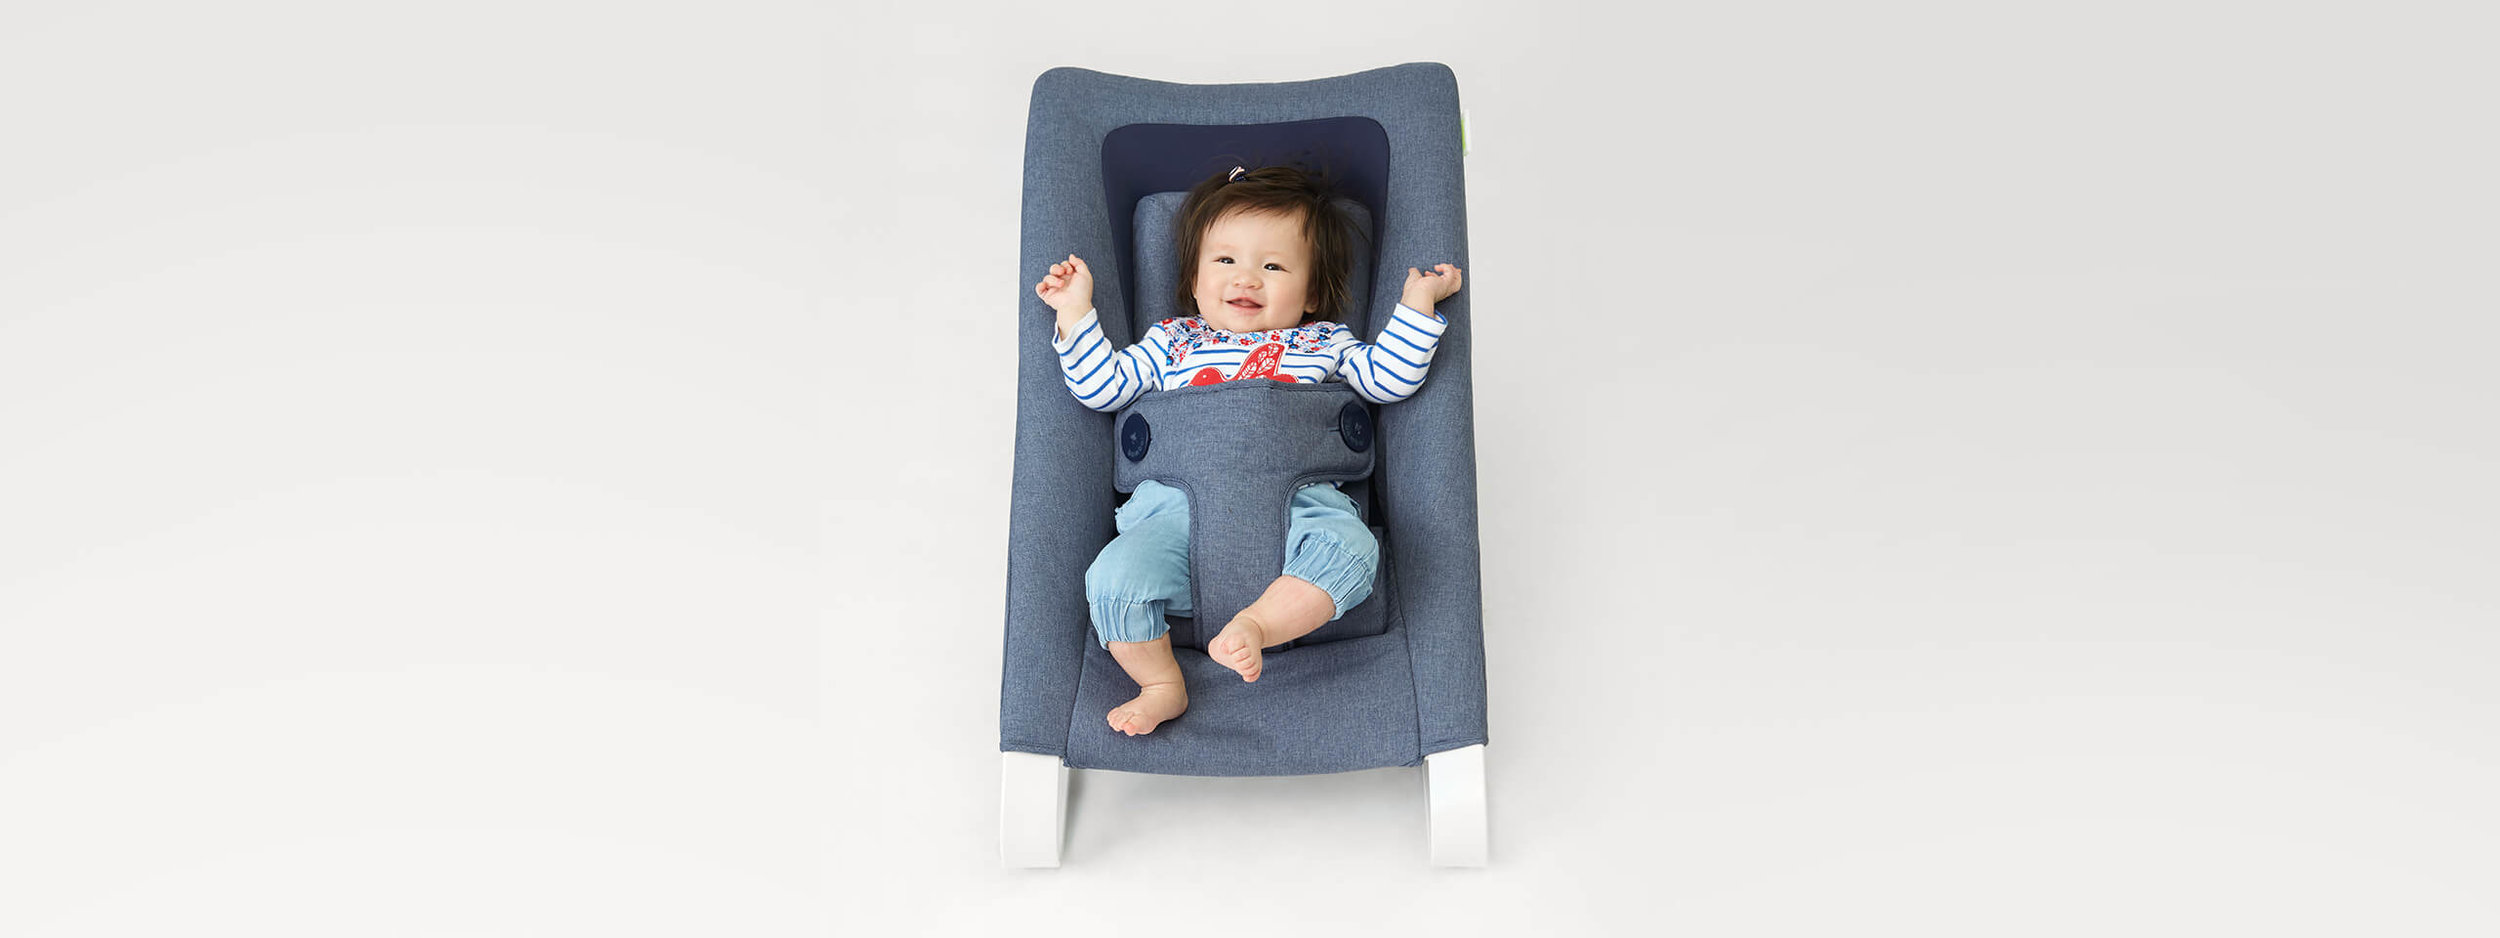 baby bamboo chair folding width studio gooris product design bouncer for bombol story newborn kit nbk with kid jpg